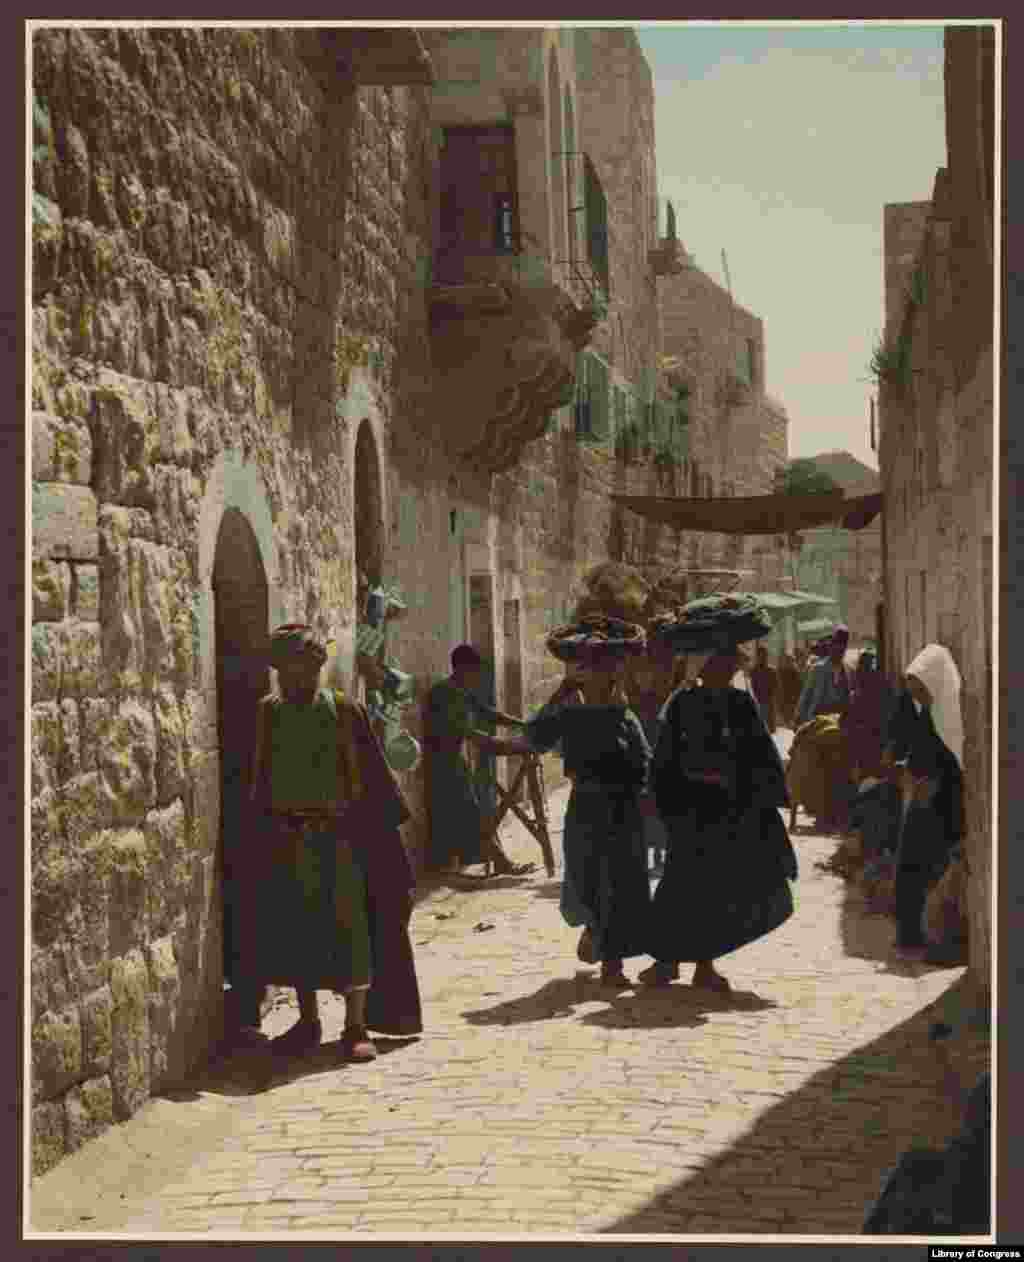 Bethlehem street scene (street leading to the Church of the Nativity). Bethlehem has been under the control of the Palestinian Authority since 1995.